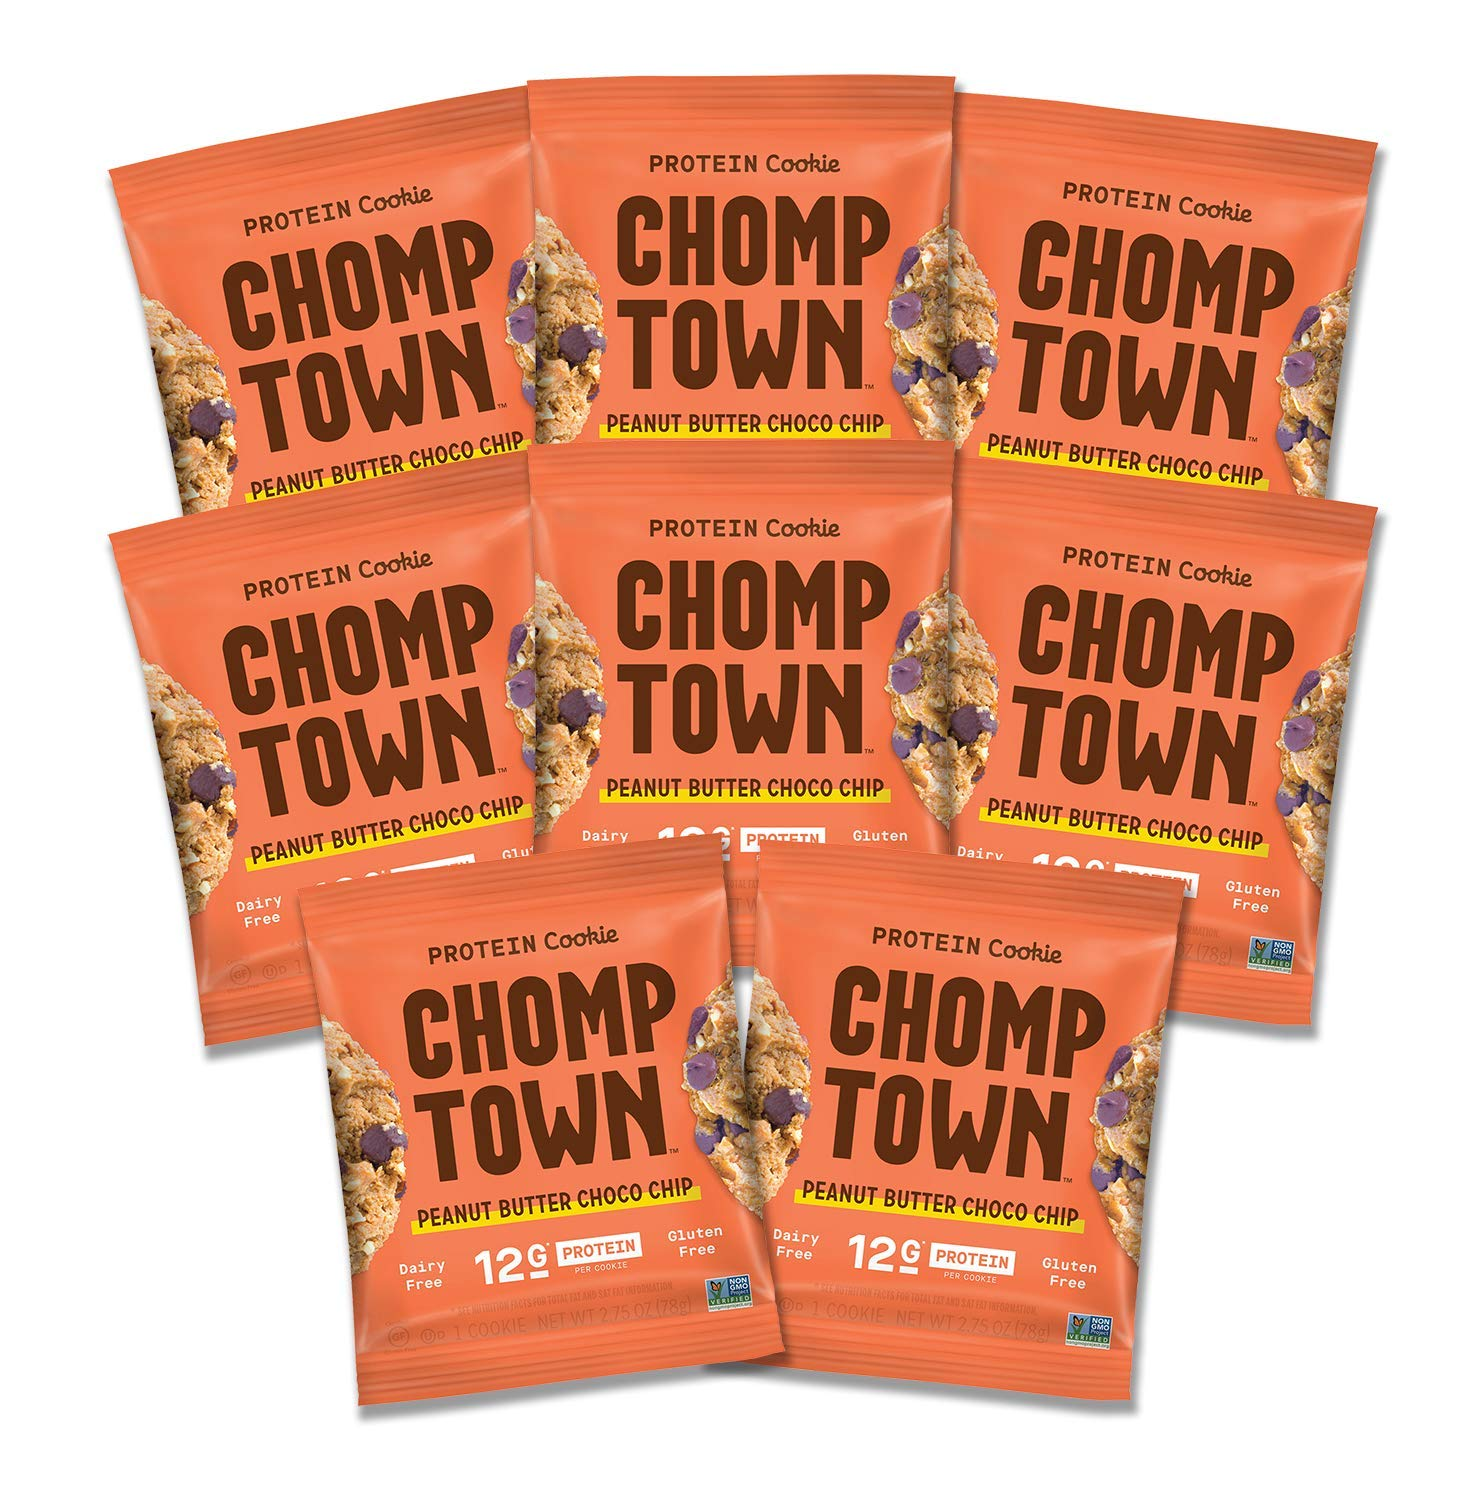 Chomptown | Peanut Butter Chocolate Chip | High-Protein Cookie | 12g Protein | Gluten-Free | Dairy-Free | Non-GMO | Fair Trade | 2.75 oz (Pack of 8)